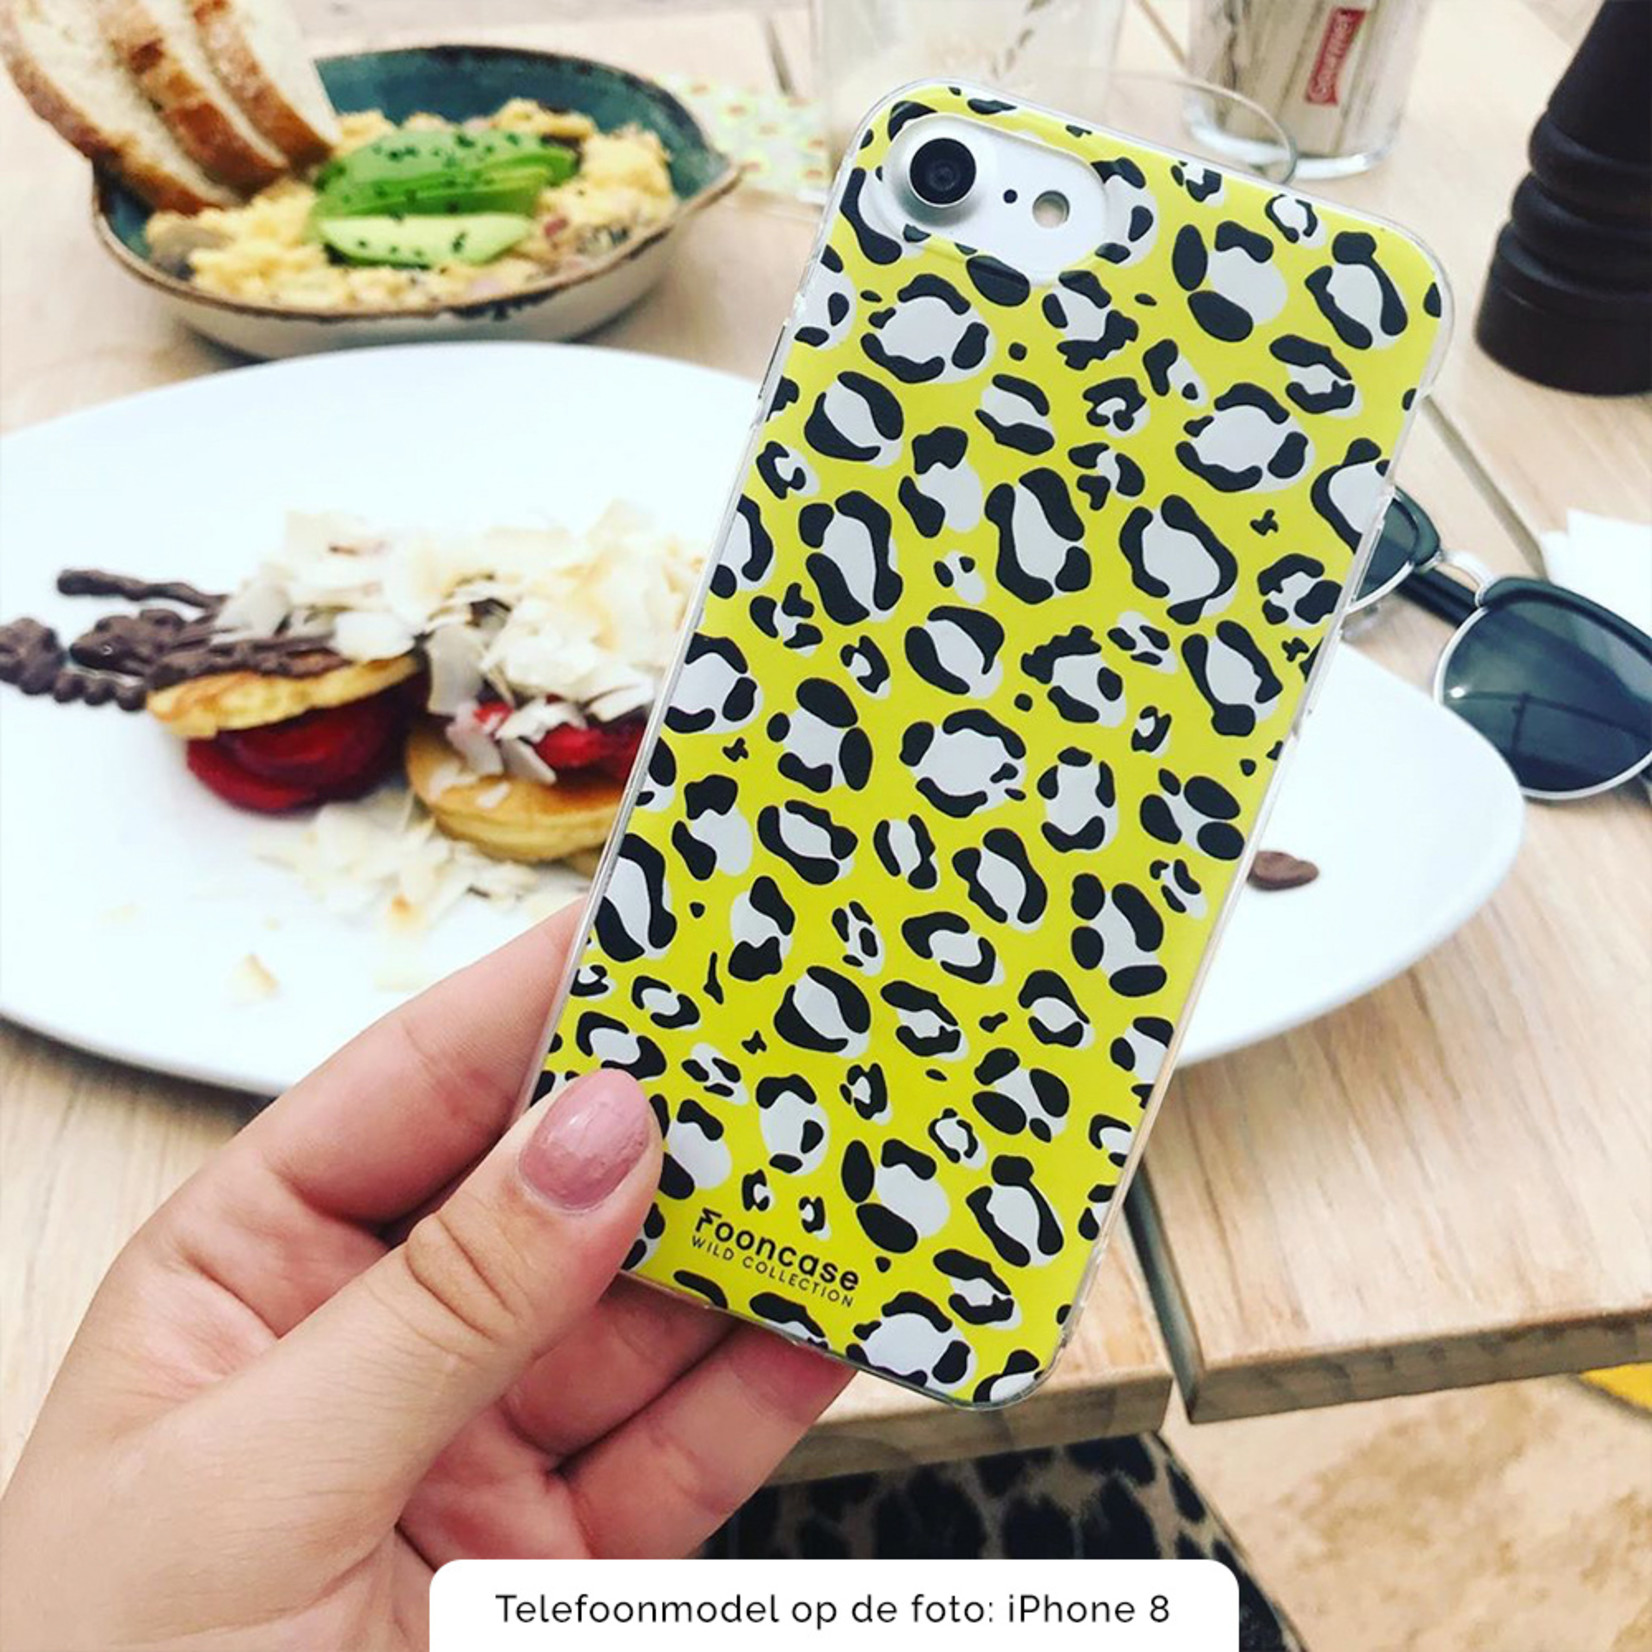 FOONCASE iPhone 6 / 6S hoesje TPU Soft Case - Back Cover - WILD COLLECTION / Luipaard / Leopard print / Geel